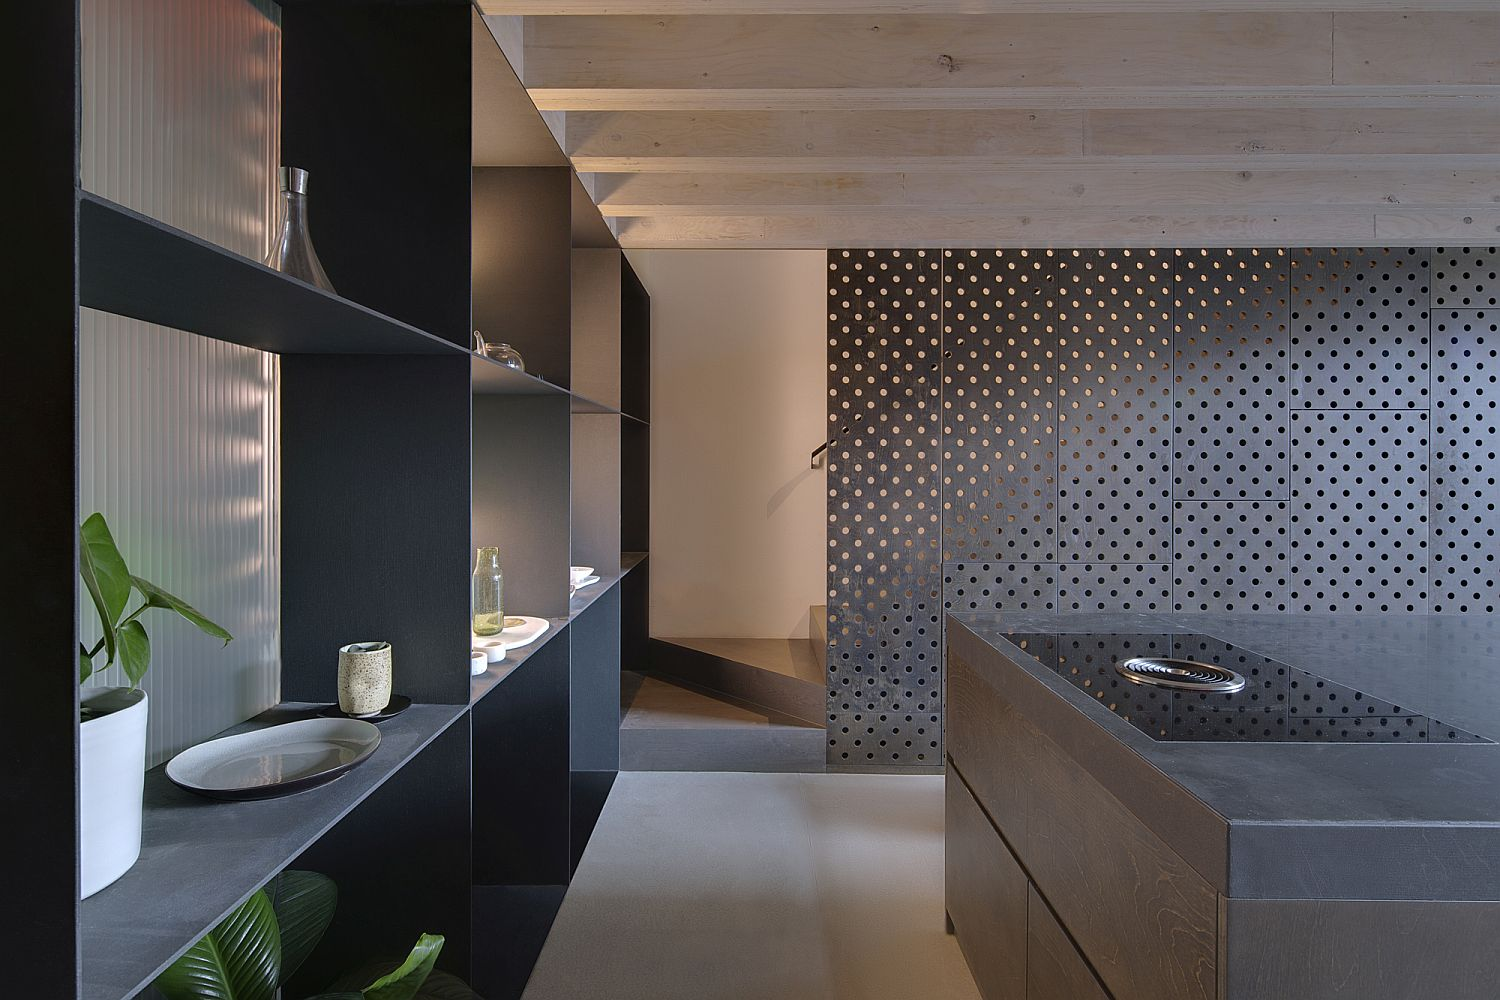 Smart way to delineate the kitchen from the entrance without blocking light